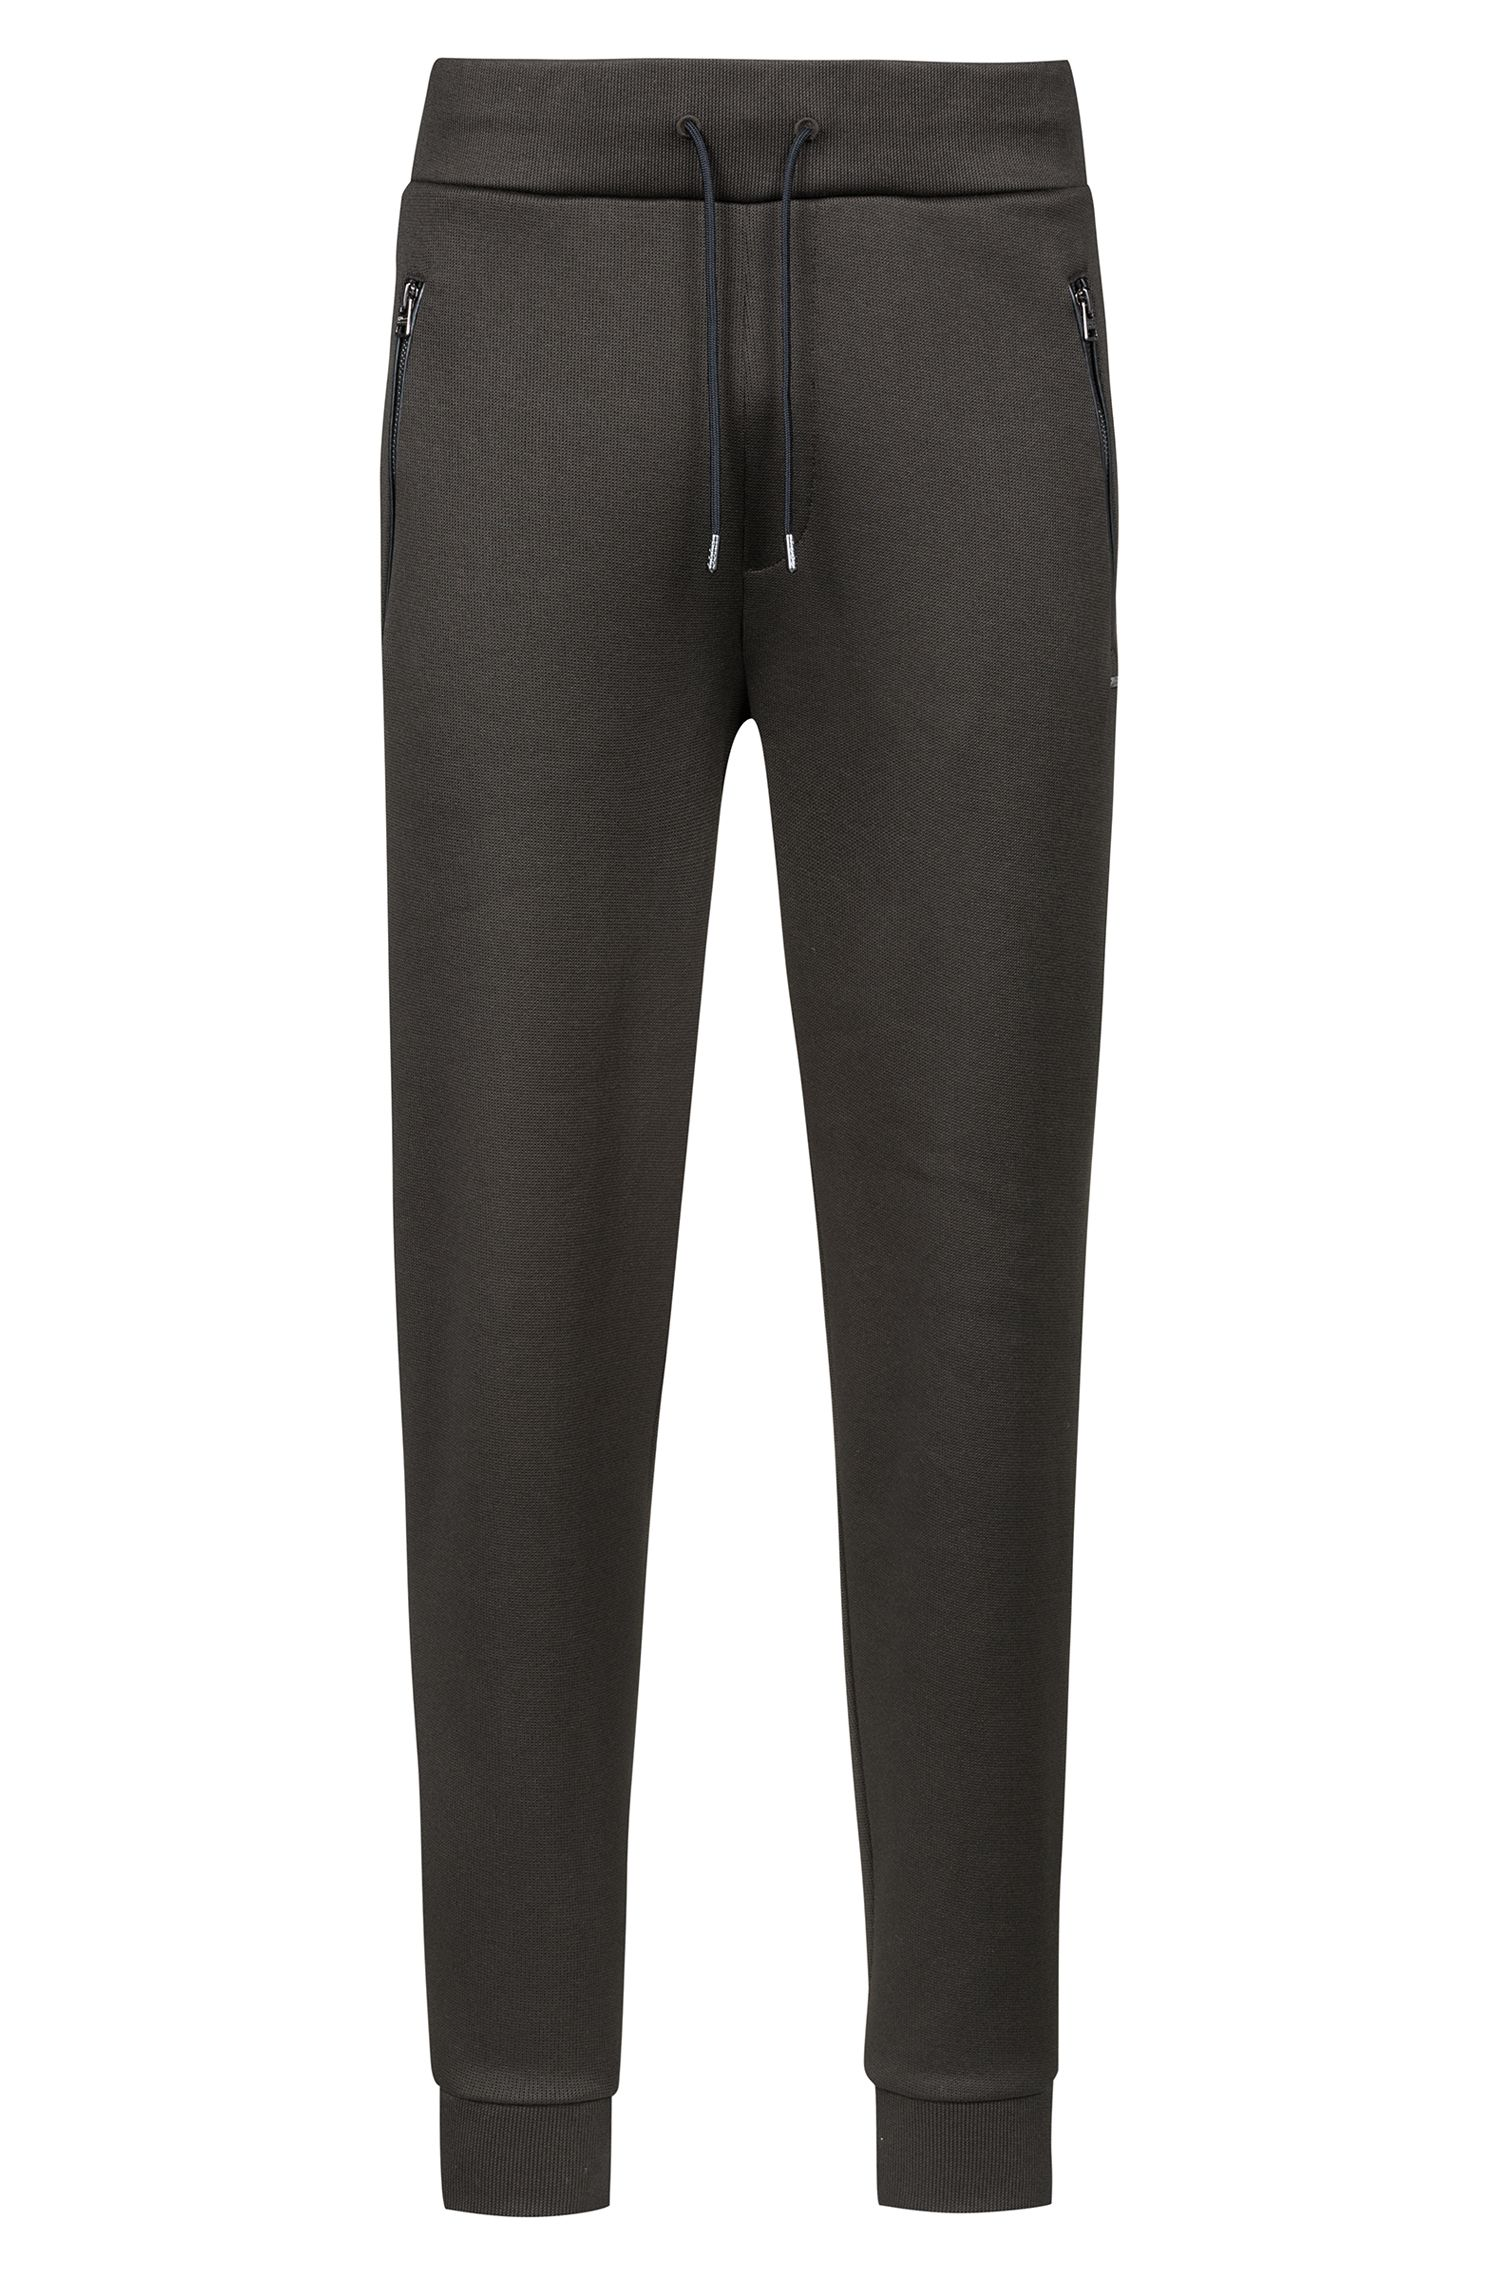 Jersey trousers in French rib with drawstring waist, Dark Green